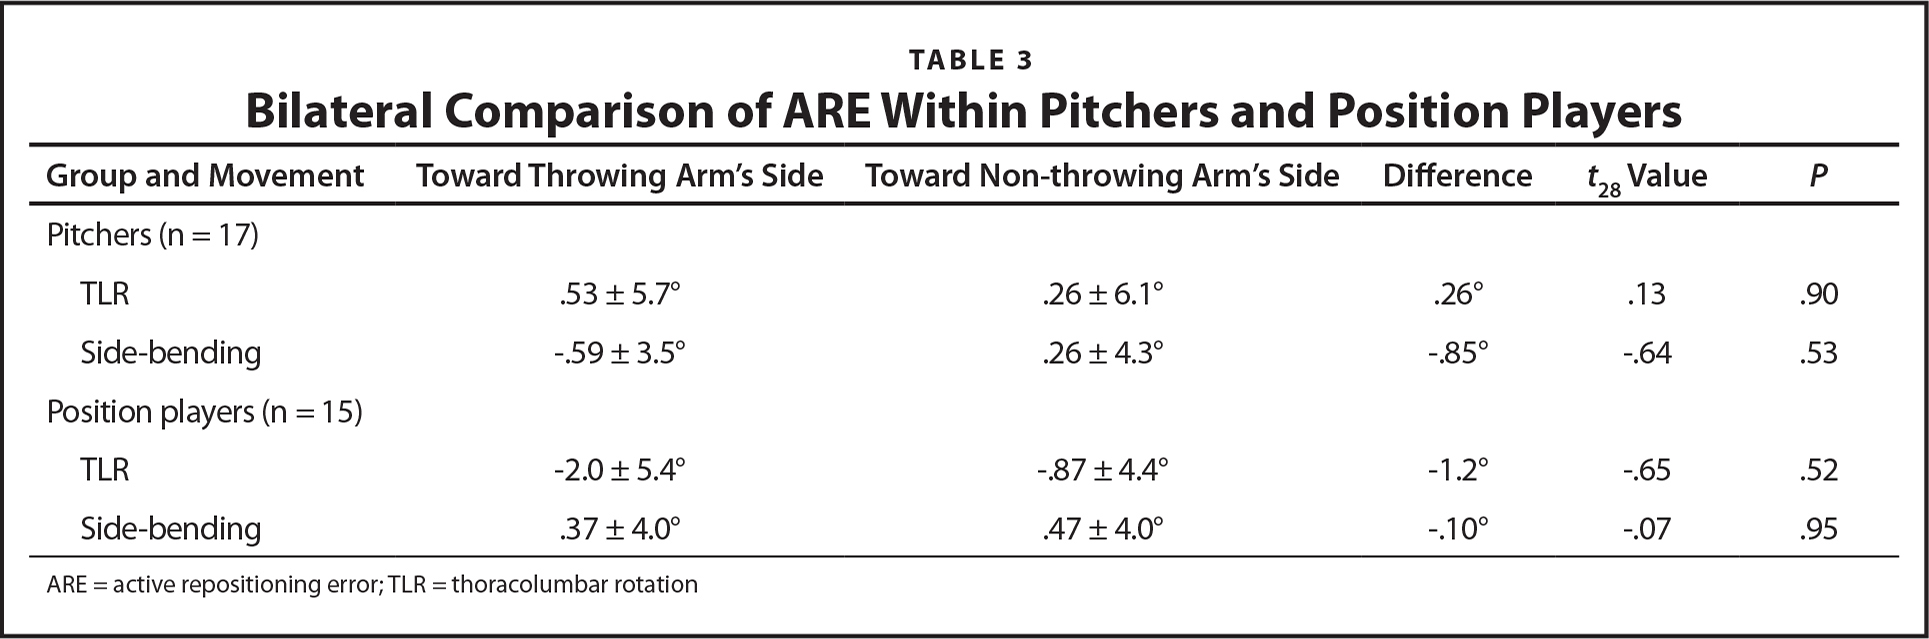 Bilateral Comparison of ARE Within Pitchers and Position Players